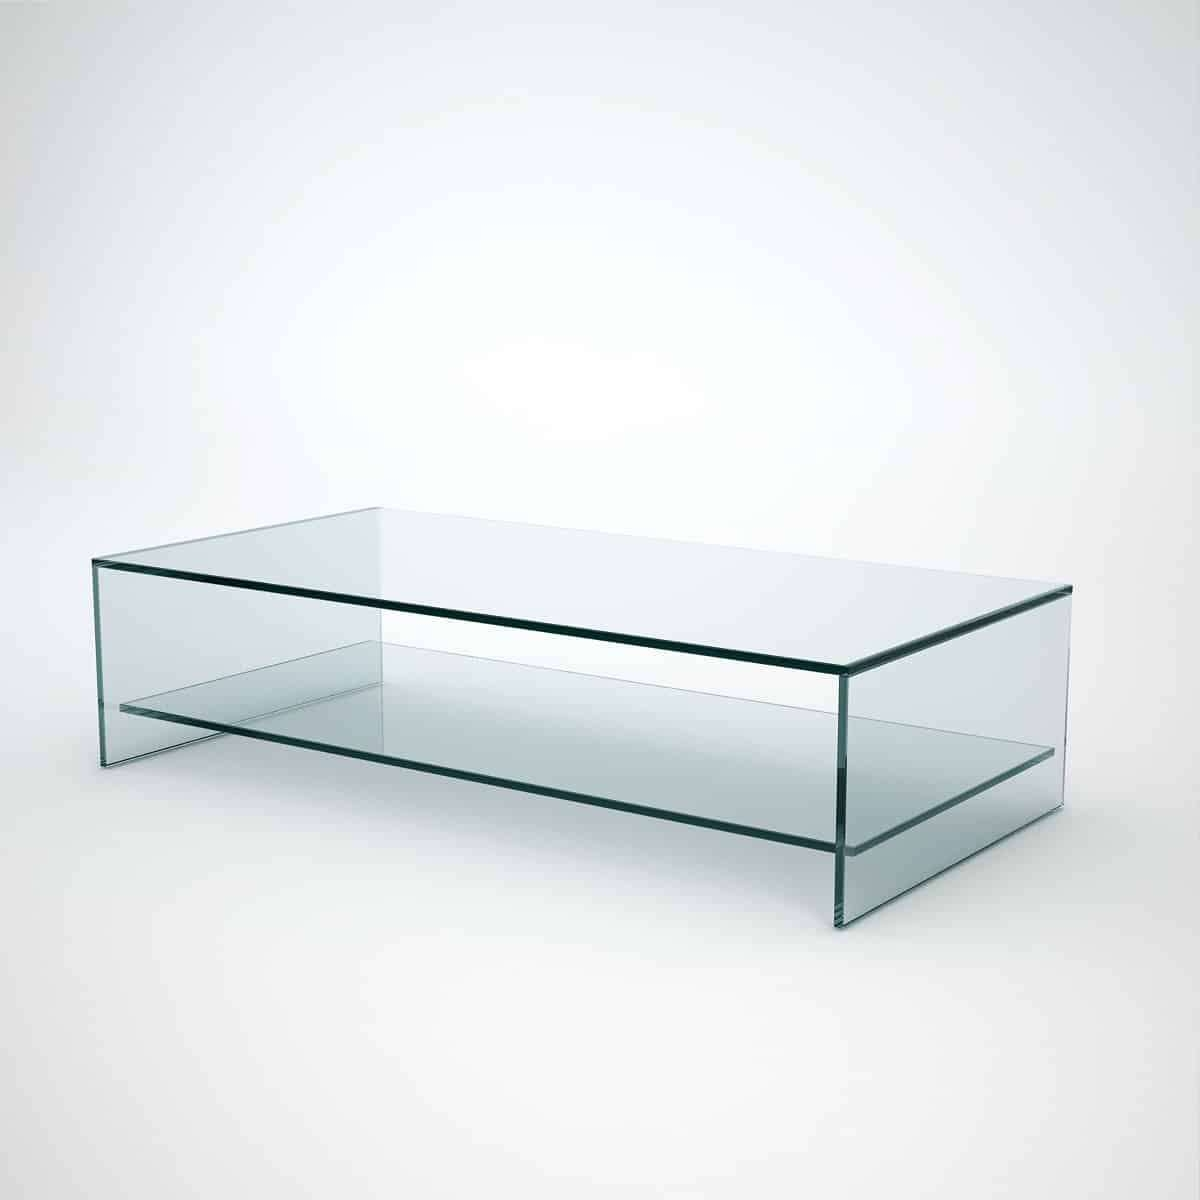 Judd – Rectangle Glass Coffee Table With Shelf – Klarity – Glass With Regard To Most Recent Glass Coffee Table With Shelf (Gallery 1 of 20)